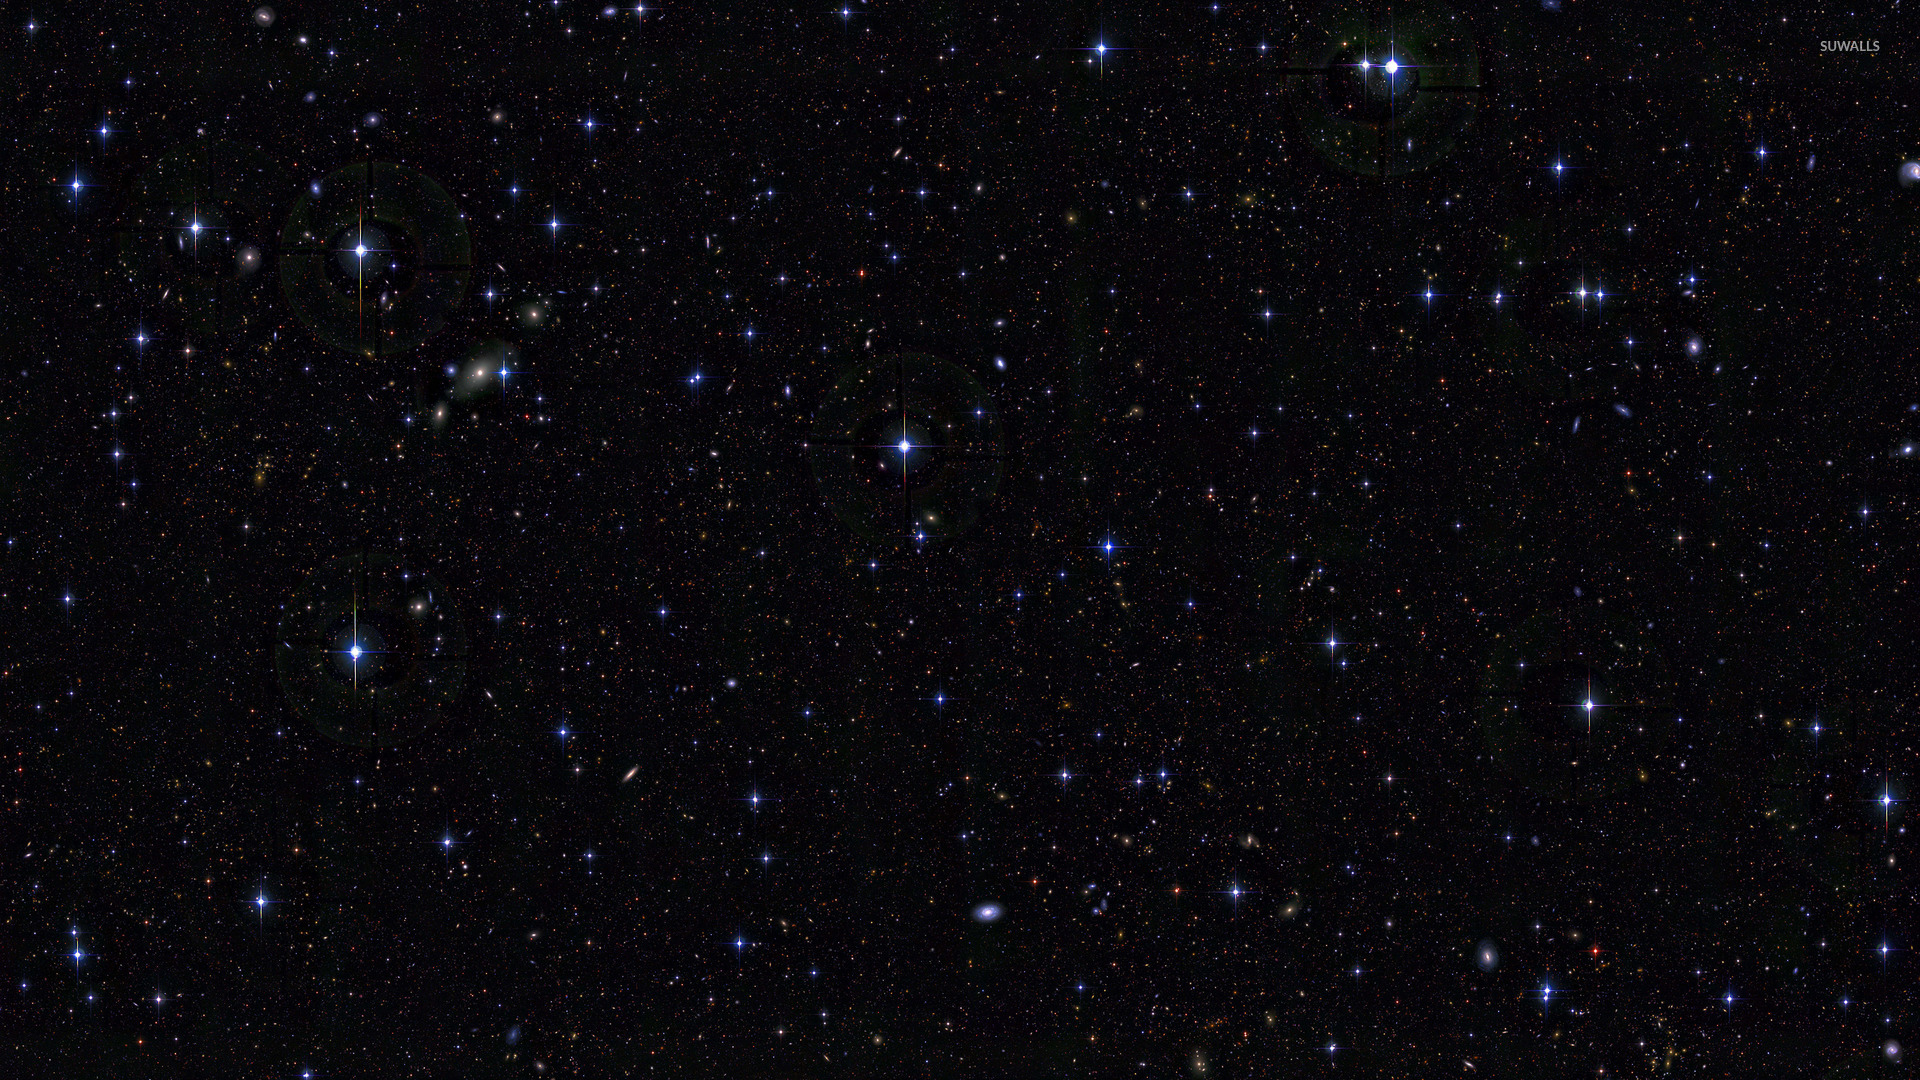 galaxies 4 wallpaper space wallpapers 42159